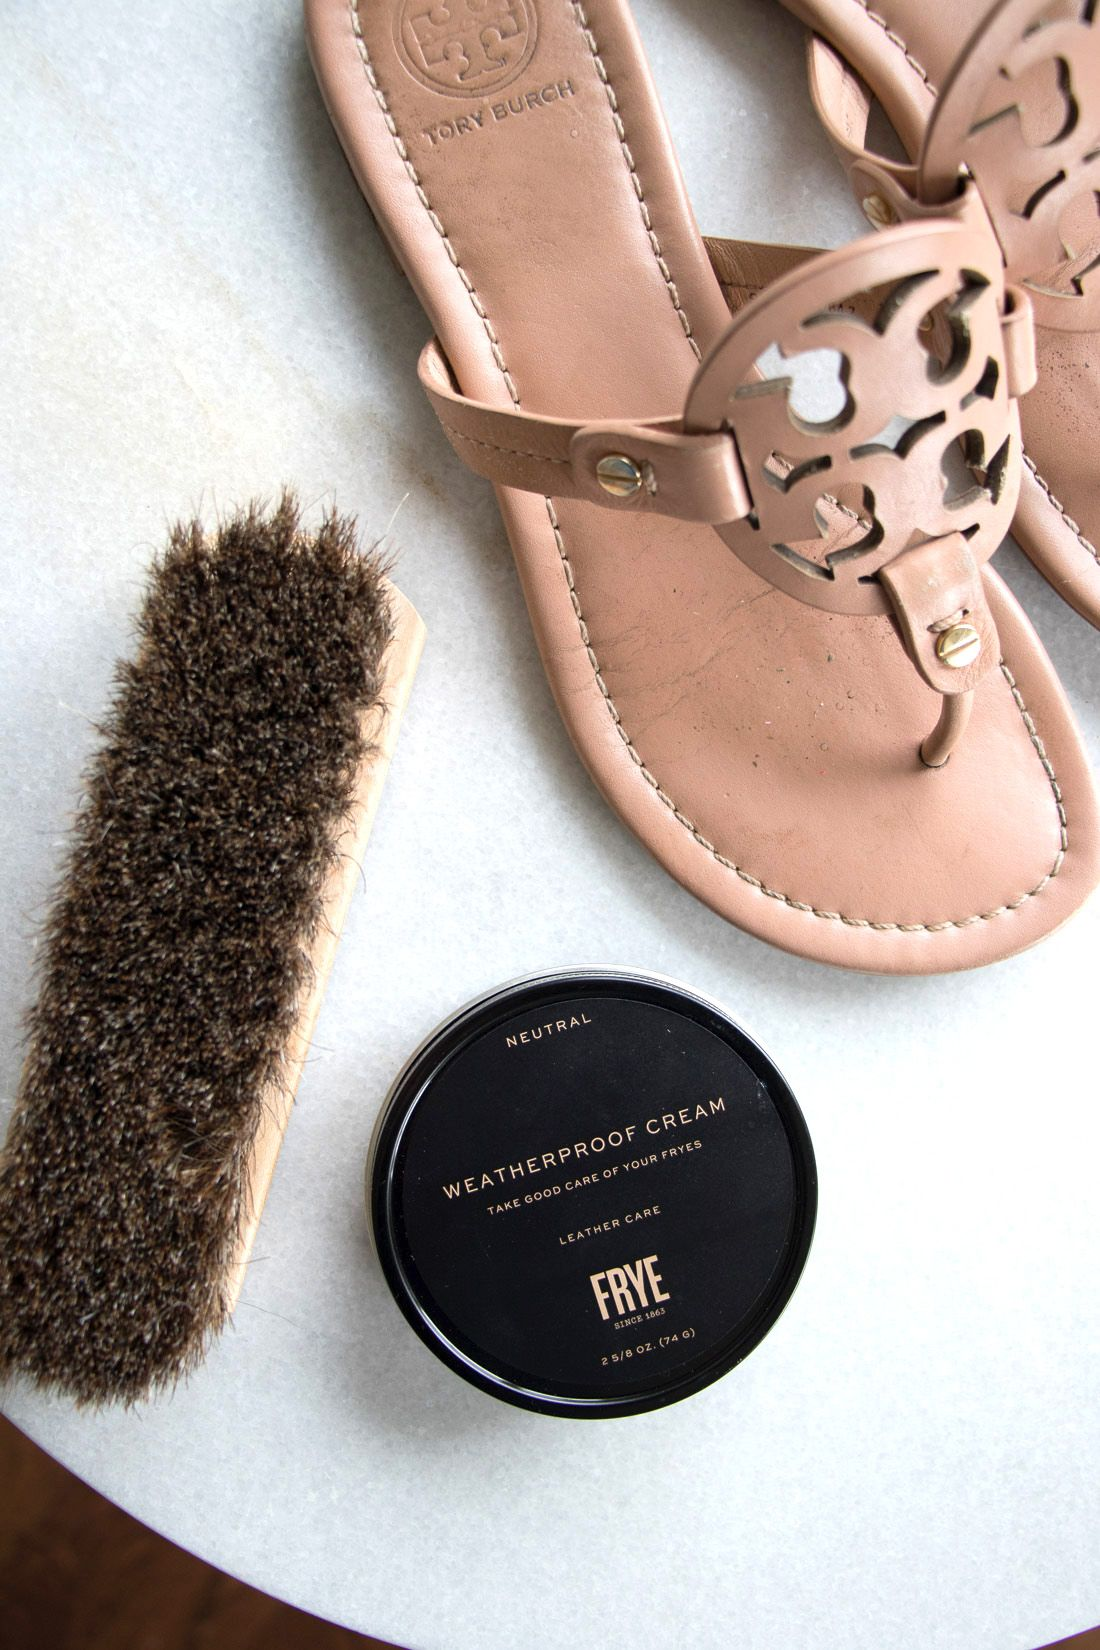 5c819f6a50c Frye Weatherproof Cream - how I use it to protect all of my leather shoes  and bags